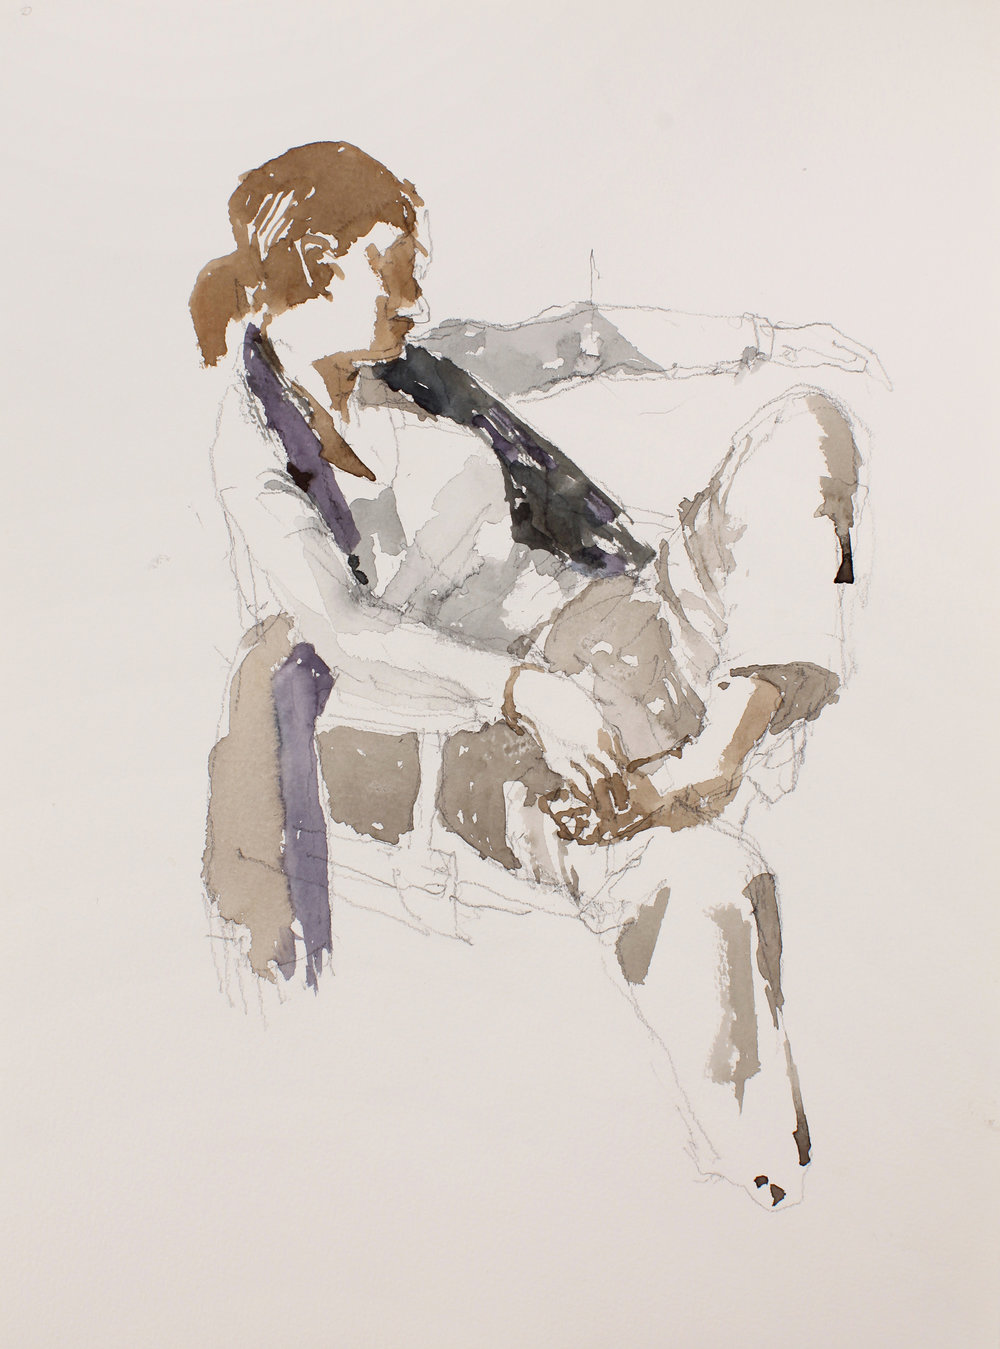 2008_Seated_Female_with_Long_Scarf_and_Bare_Foot_watercolour_and_pencil_on_paper_15x11in_WPF524.jpg